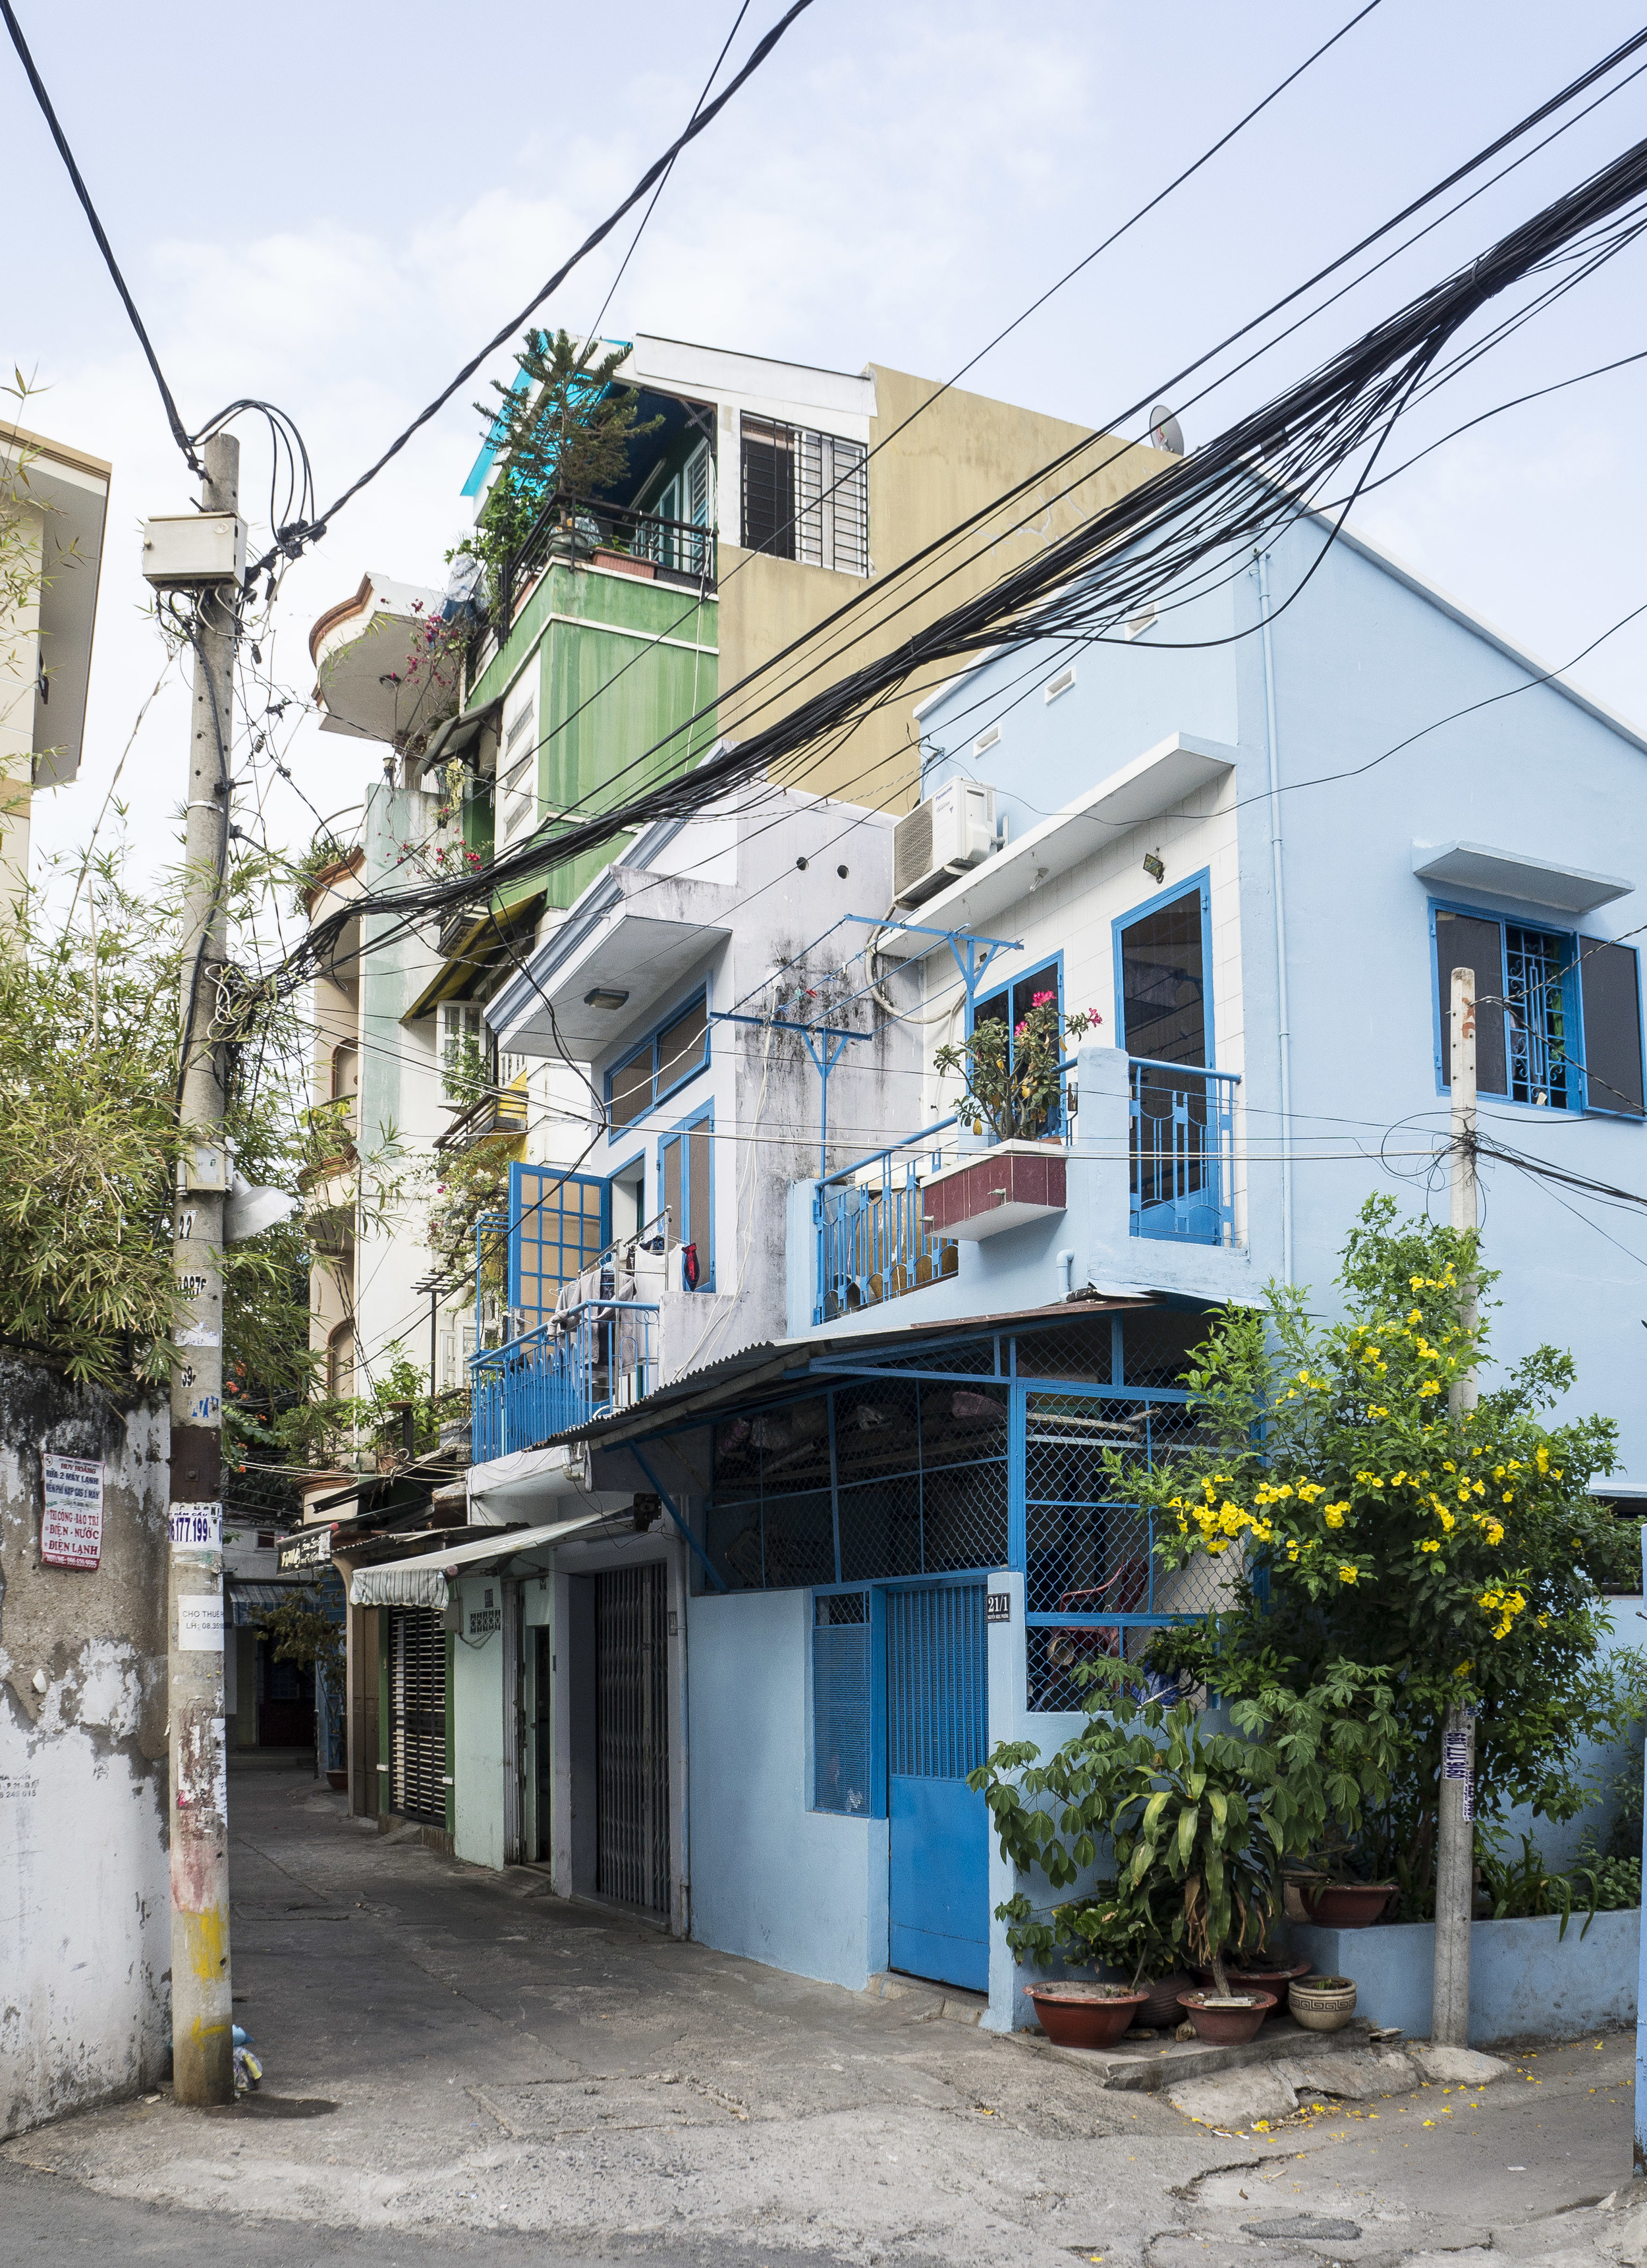 A cute blue corner house with aapricot tree in fullbloom. Saigon is all about yellow flowers during TET holiday.